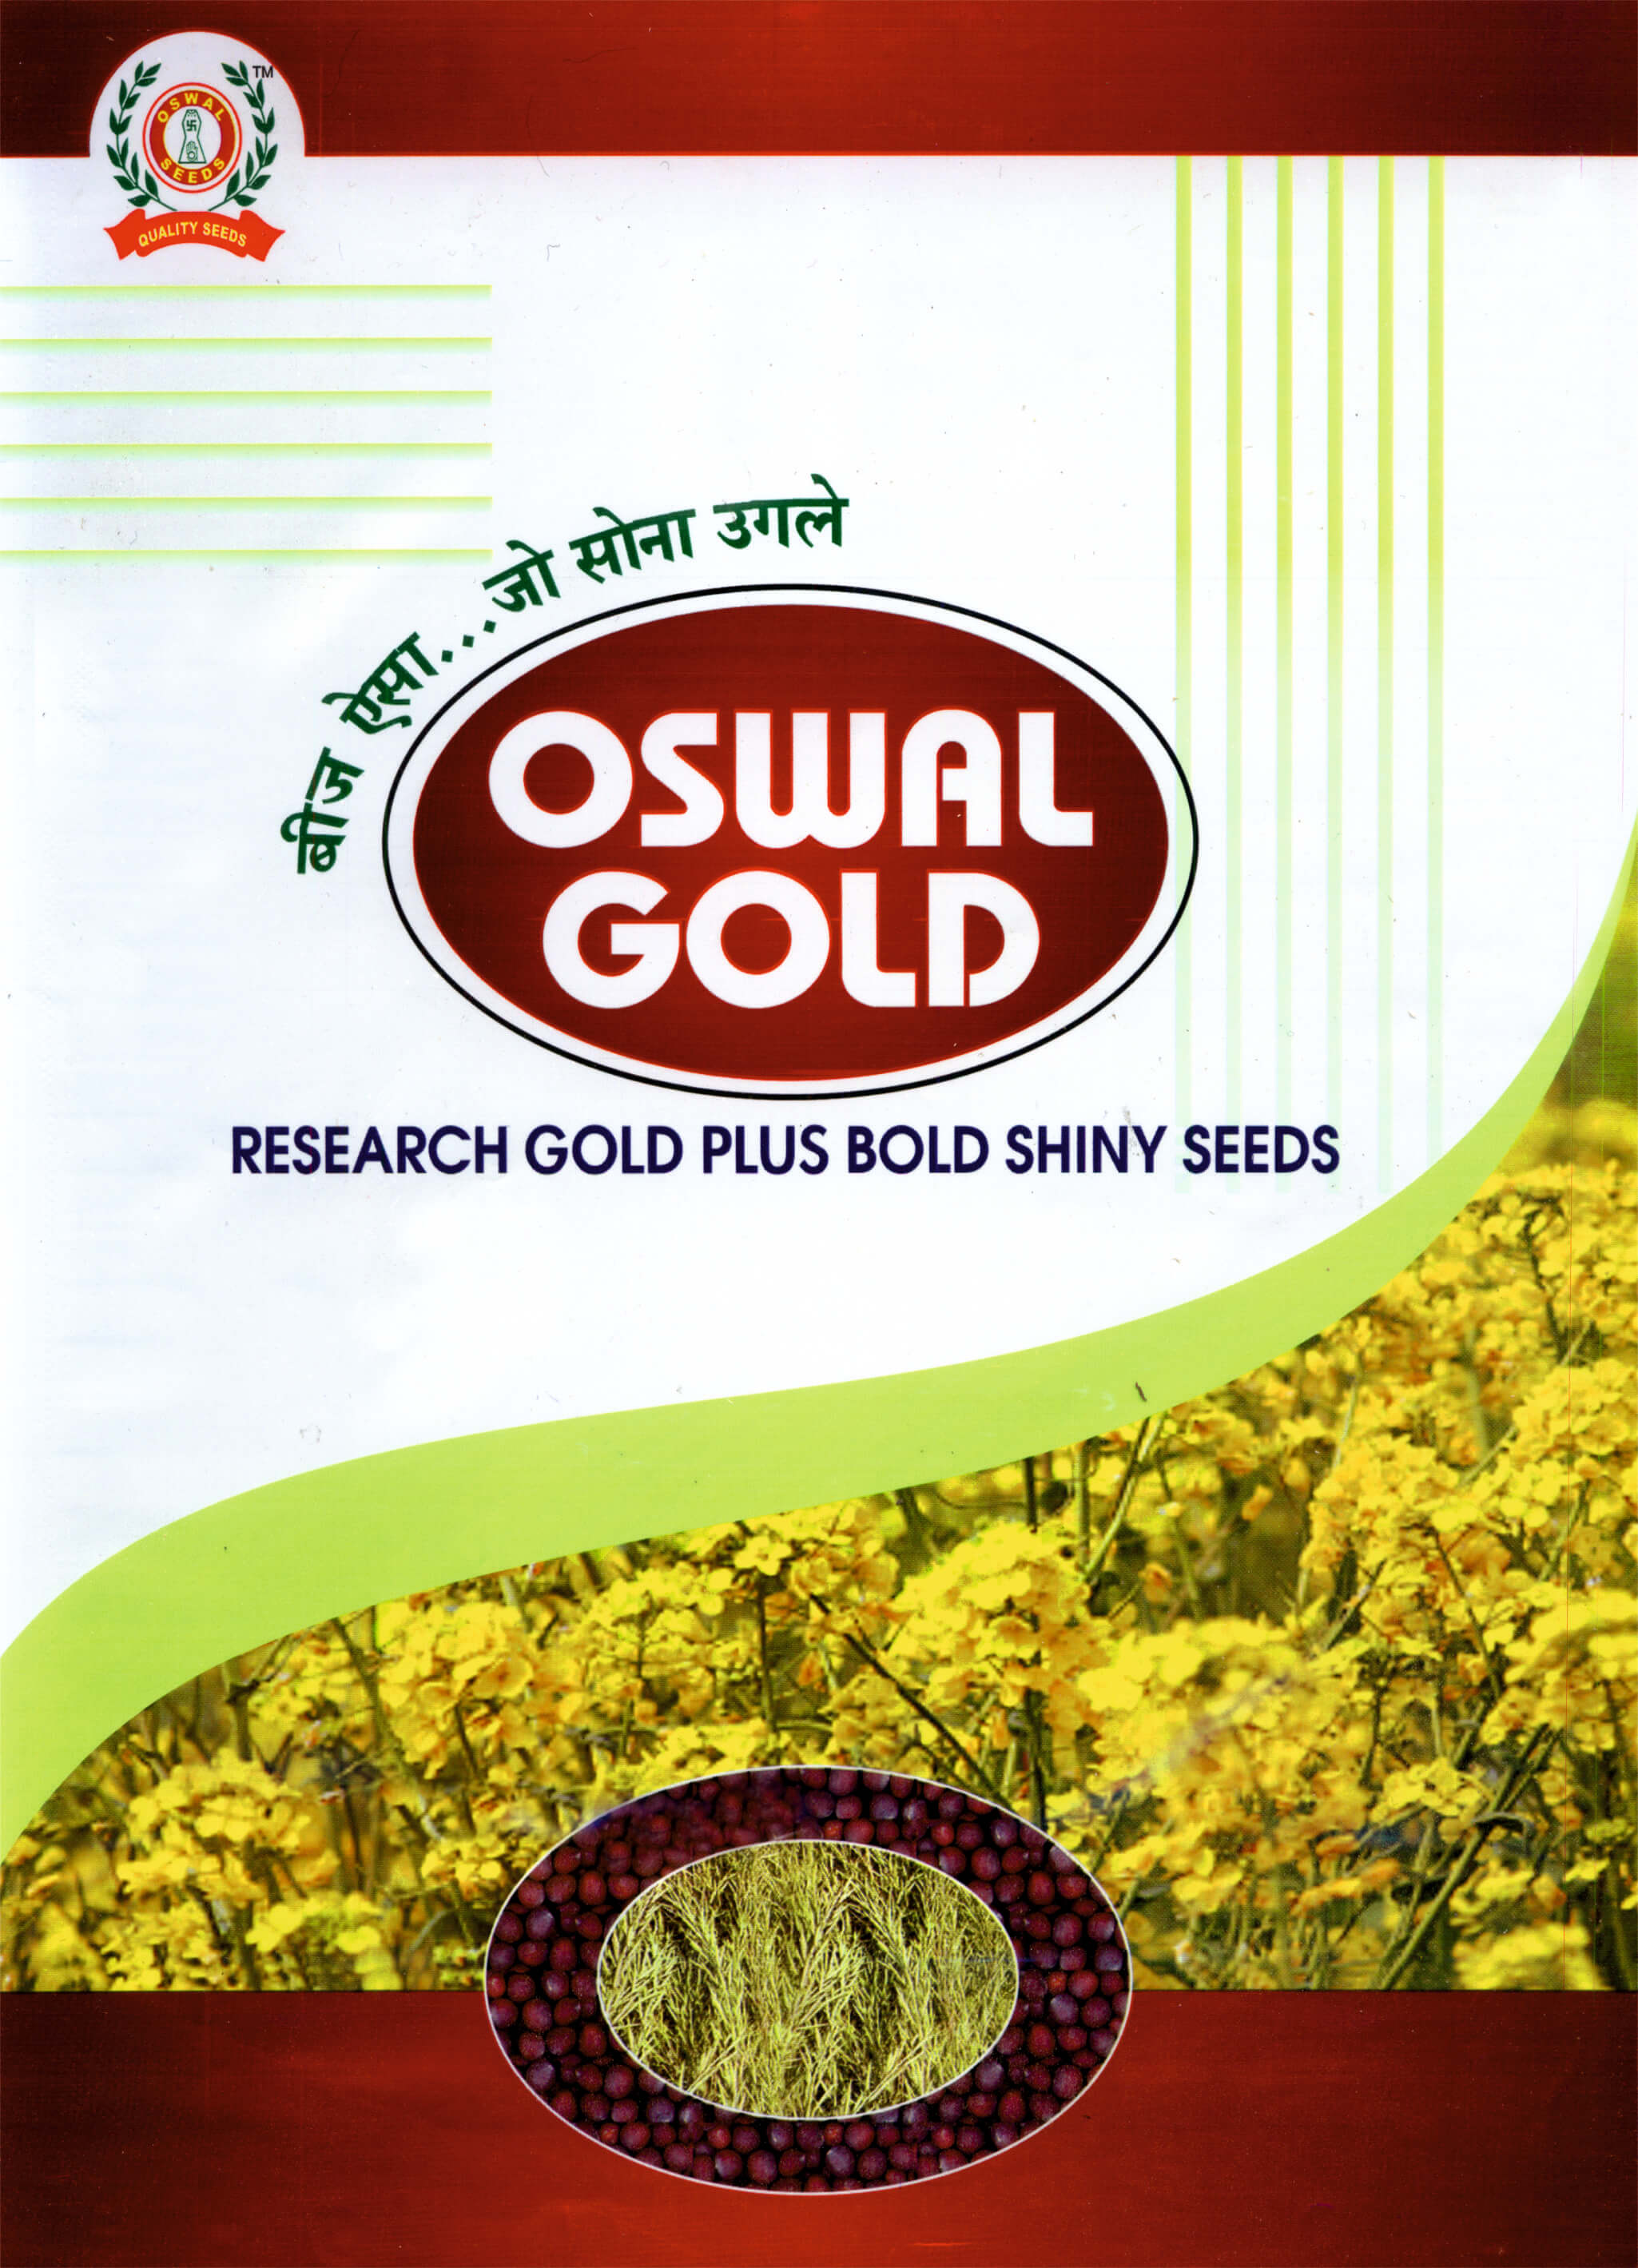 OSWAL GOLD